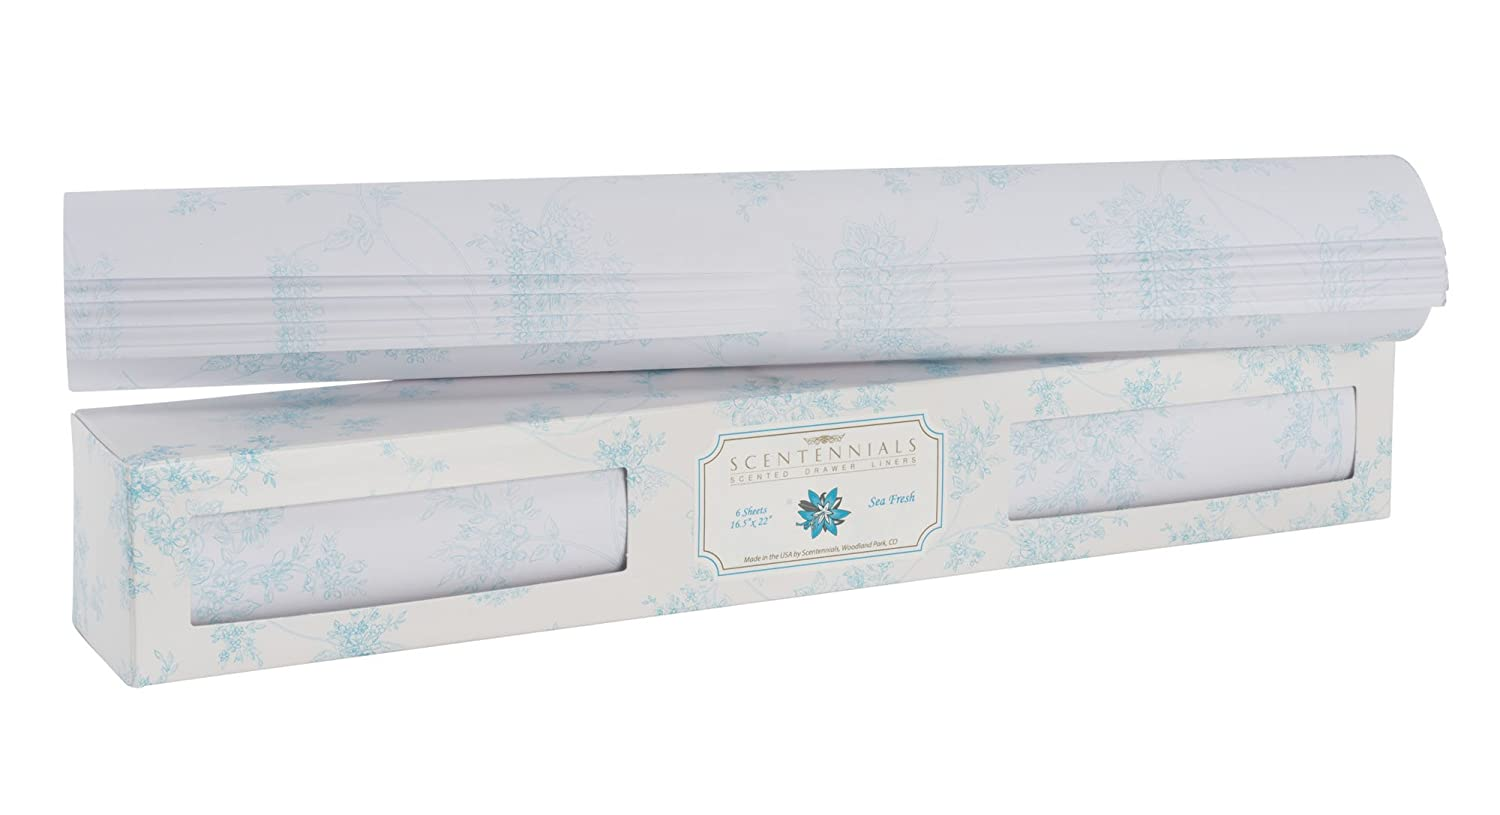 Original Series Scented Drawer Liners From Scentennials (Sea Fresh) Scentennials Products